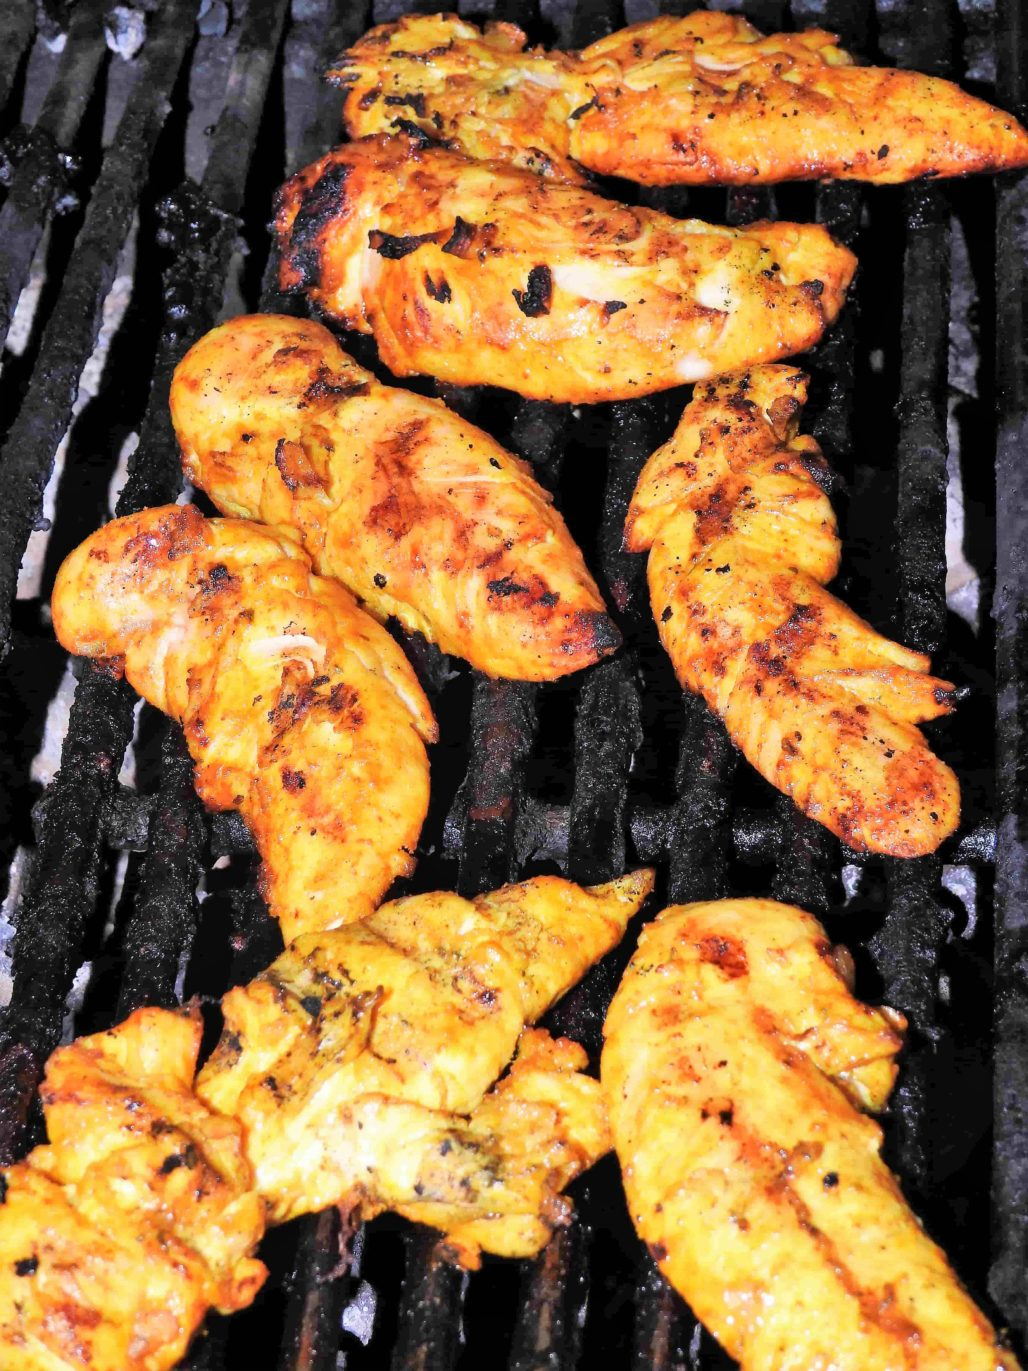 Grilled Turmeric Chicken Tenders grilled until just cooked enough but still tender